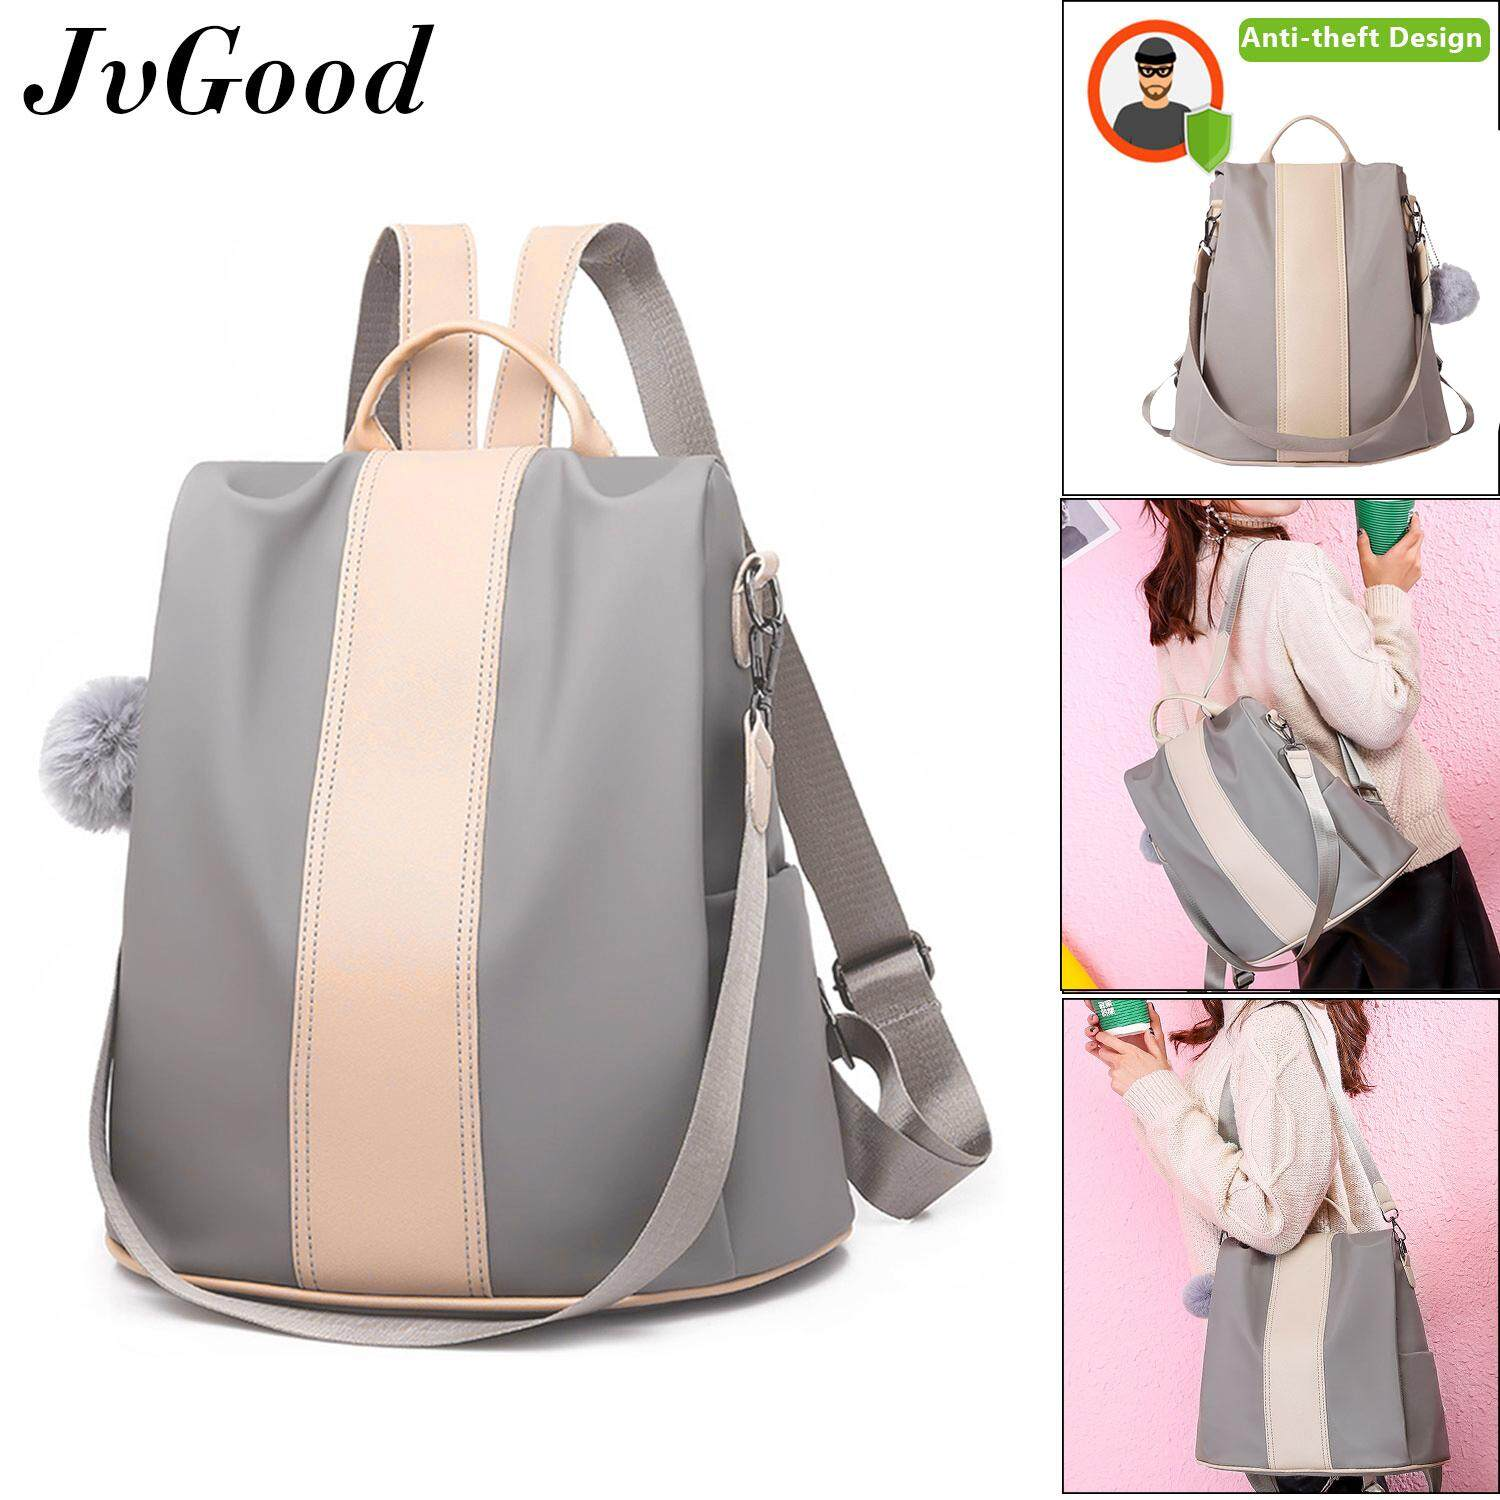 JvGood Shoulder Backpacks Women Korean Style Sling Bag Women Bag School Bag  Waterproof Oxford Daypack Lightweight Anti-theft 2018 New Version ce100b7b8a8f4